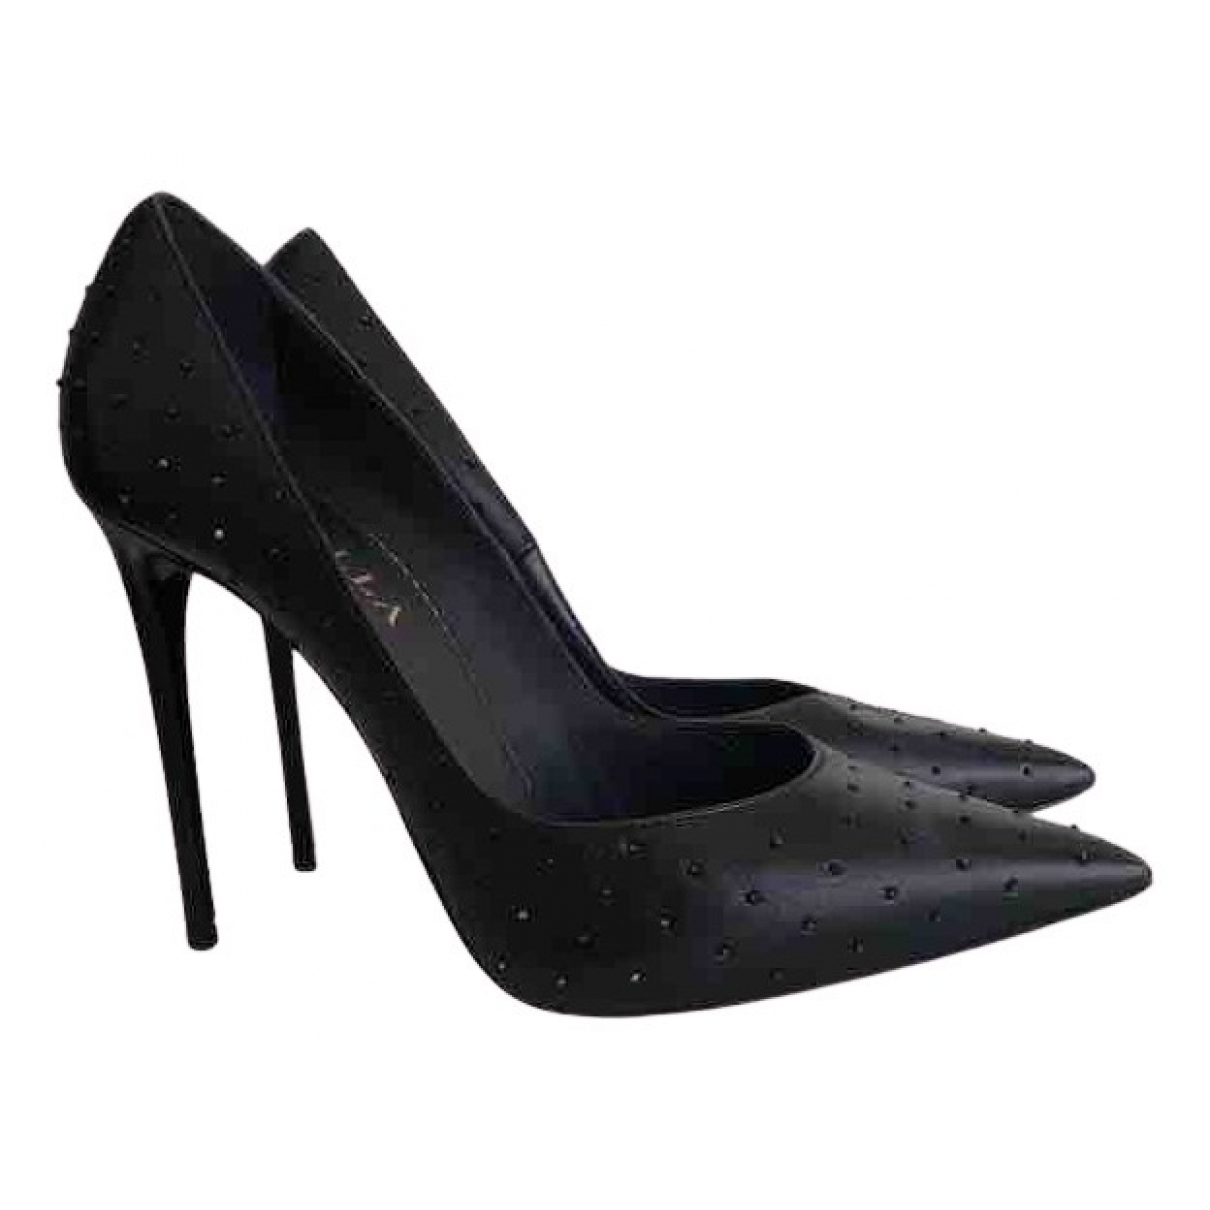 Le Silla \N Pumps in  Schwarz Leder